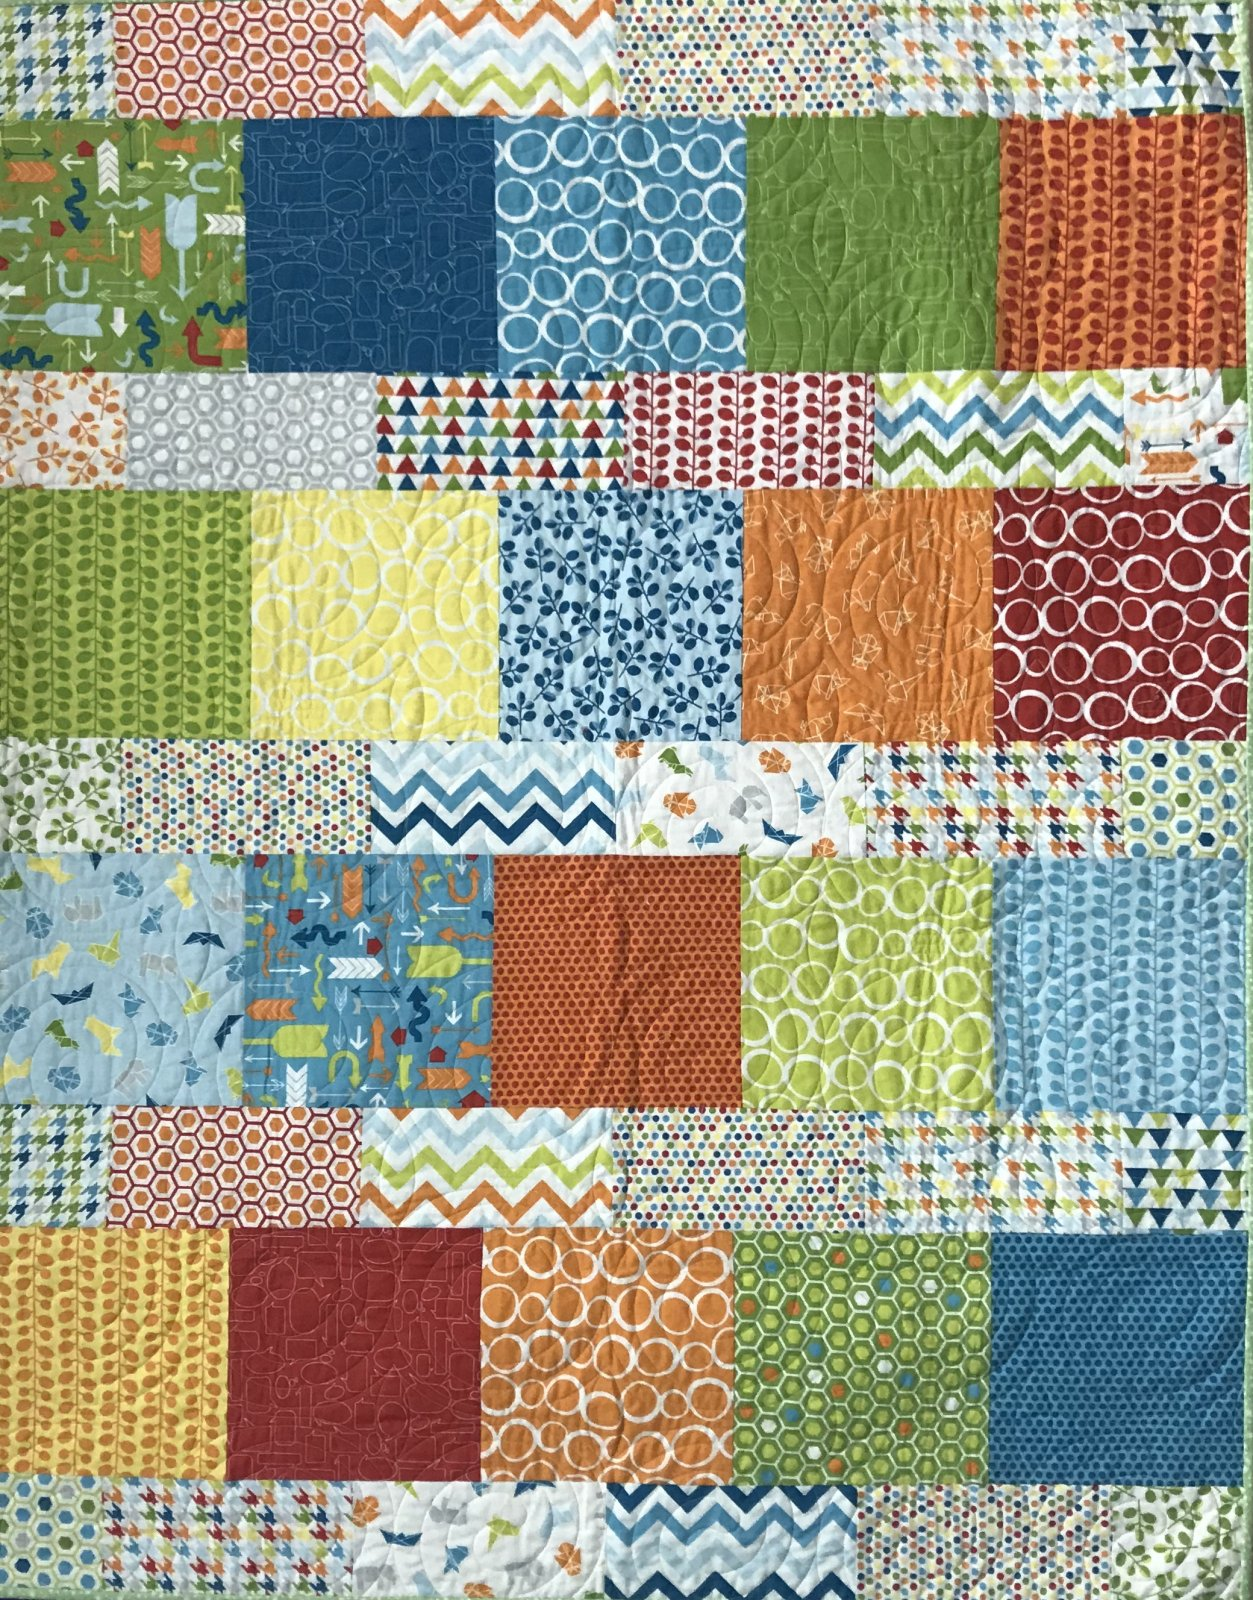 Mixed Bag Layer Cake Lemonade Flannel Quilt 48 x 60